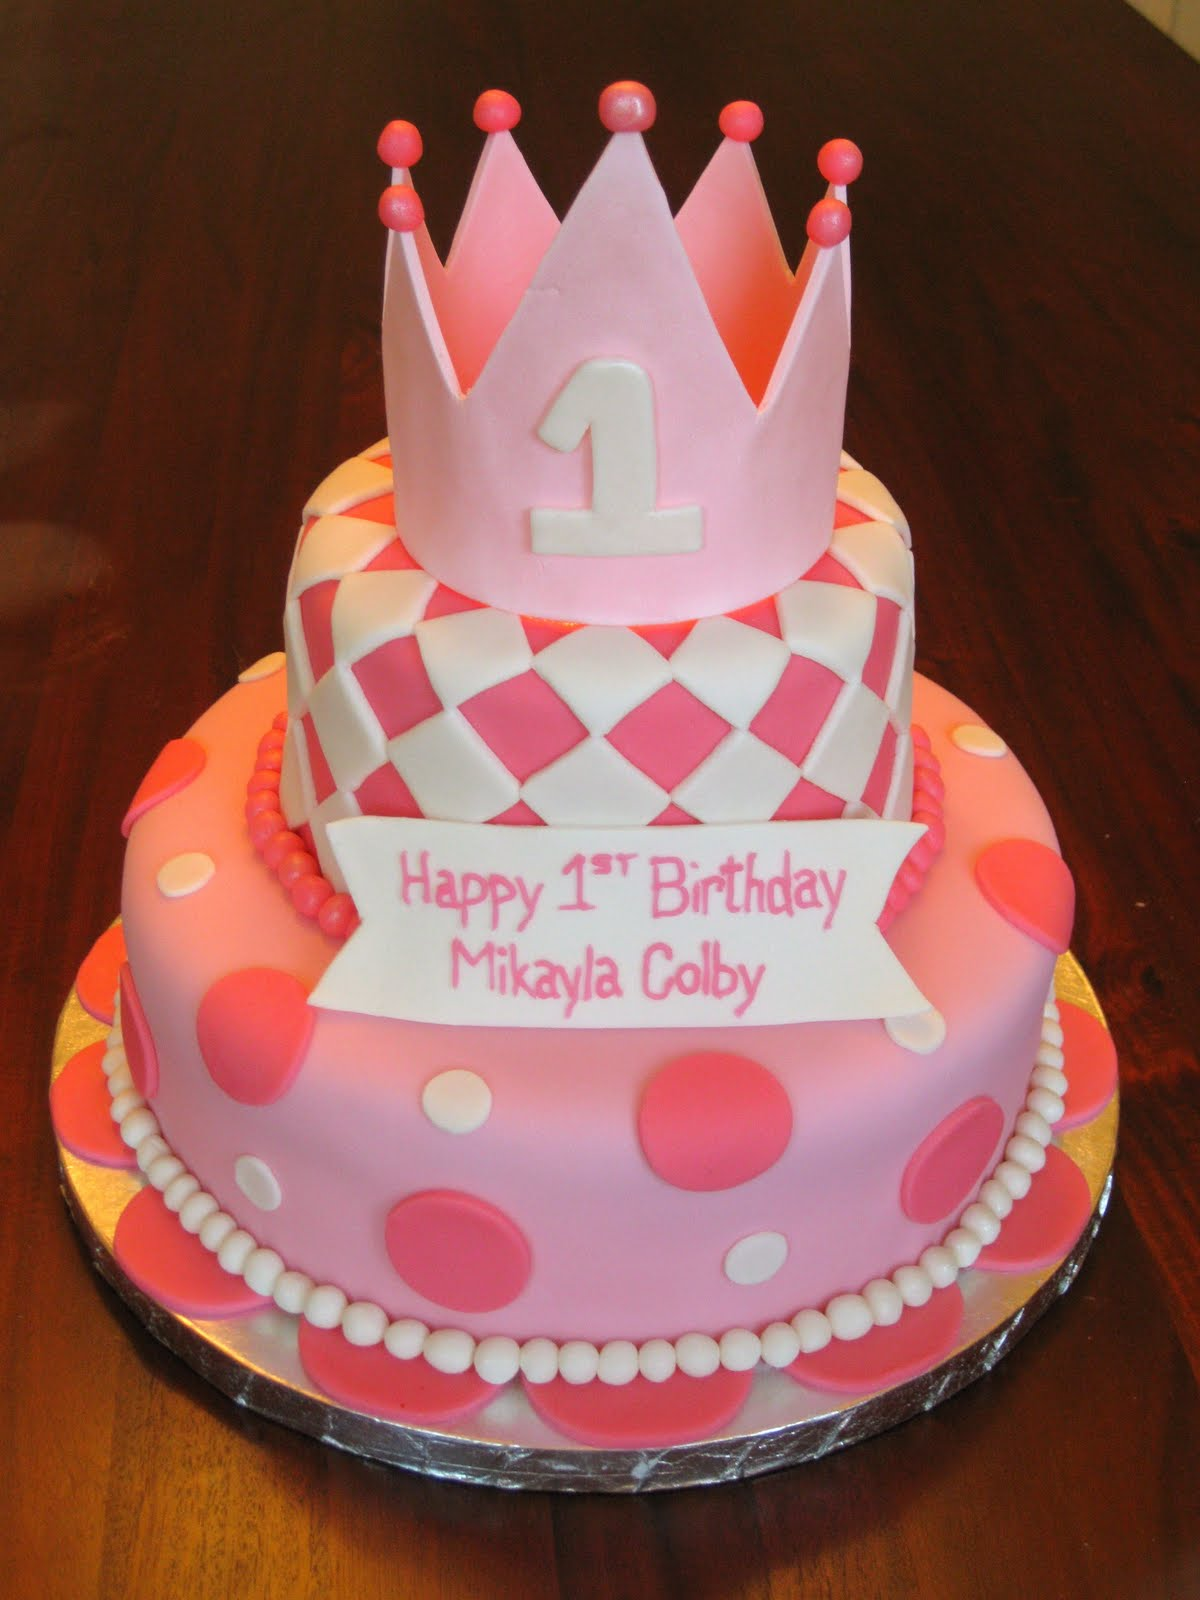 Fondant Cake Design For Birthday : Fun Fondant Cakes: I love looking at colorful cakes!